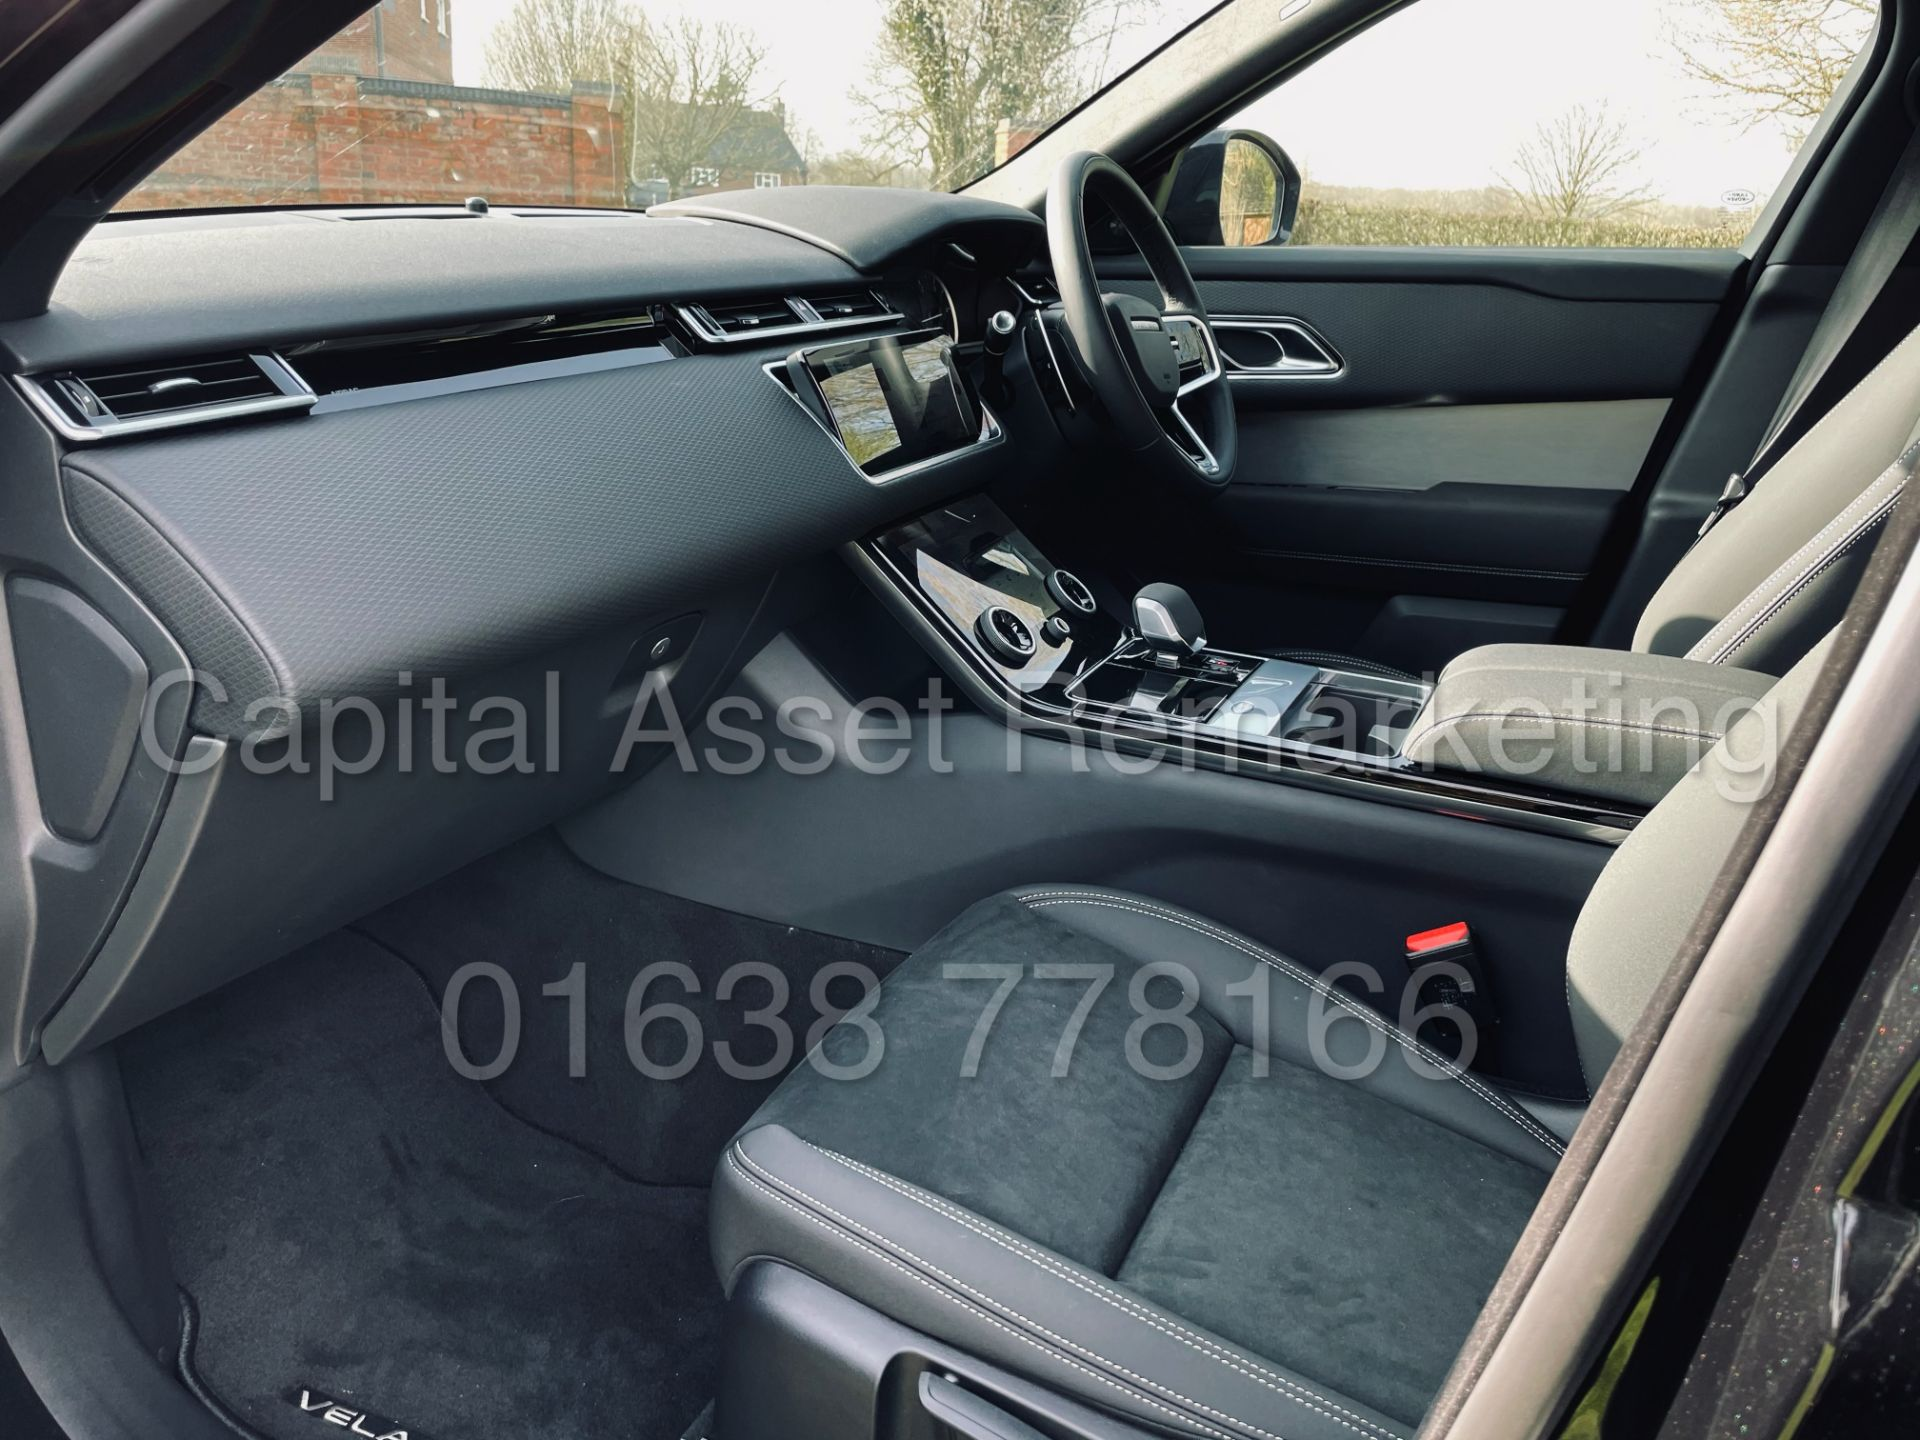 (On Sale) RANGE ROVER VELAR *R-DYNAMIC* SUV (2021) *8 SPEED AUTO - LEATHER* (DELIVERY MILES) - Image 23 of 50